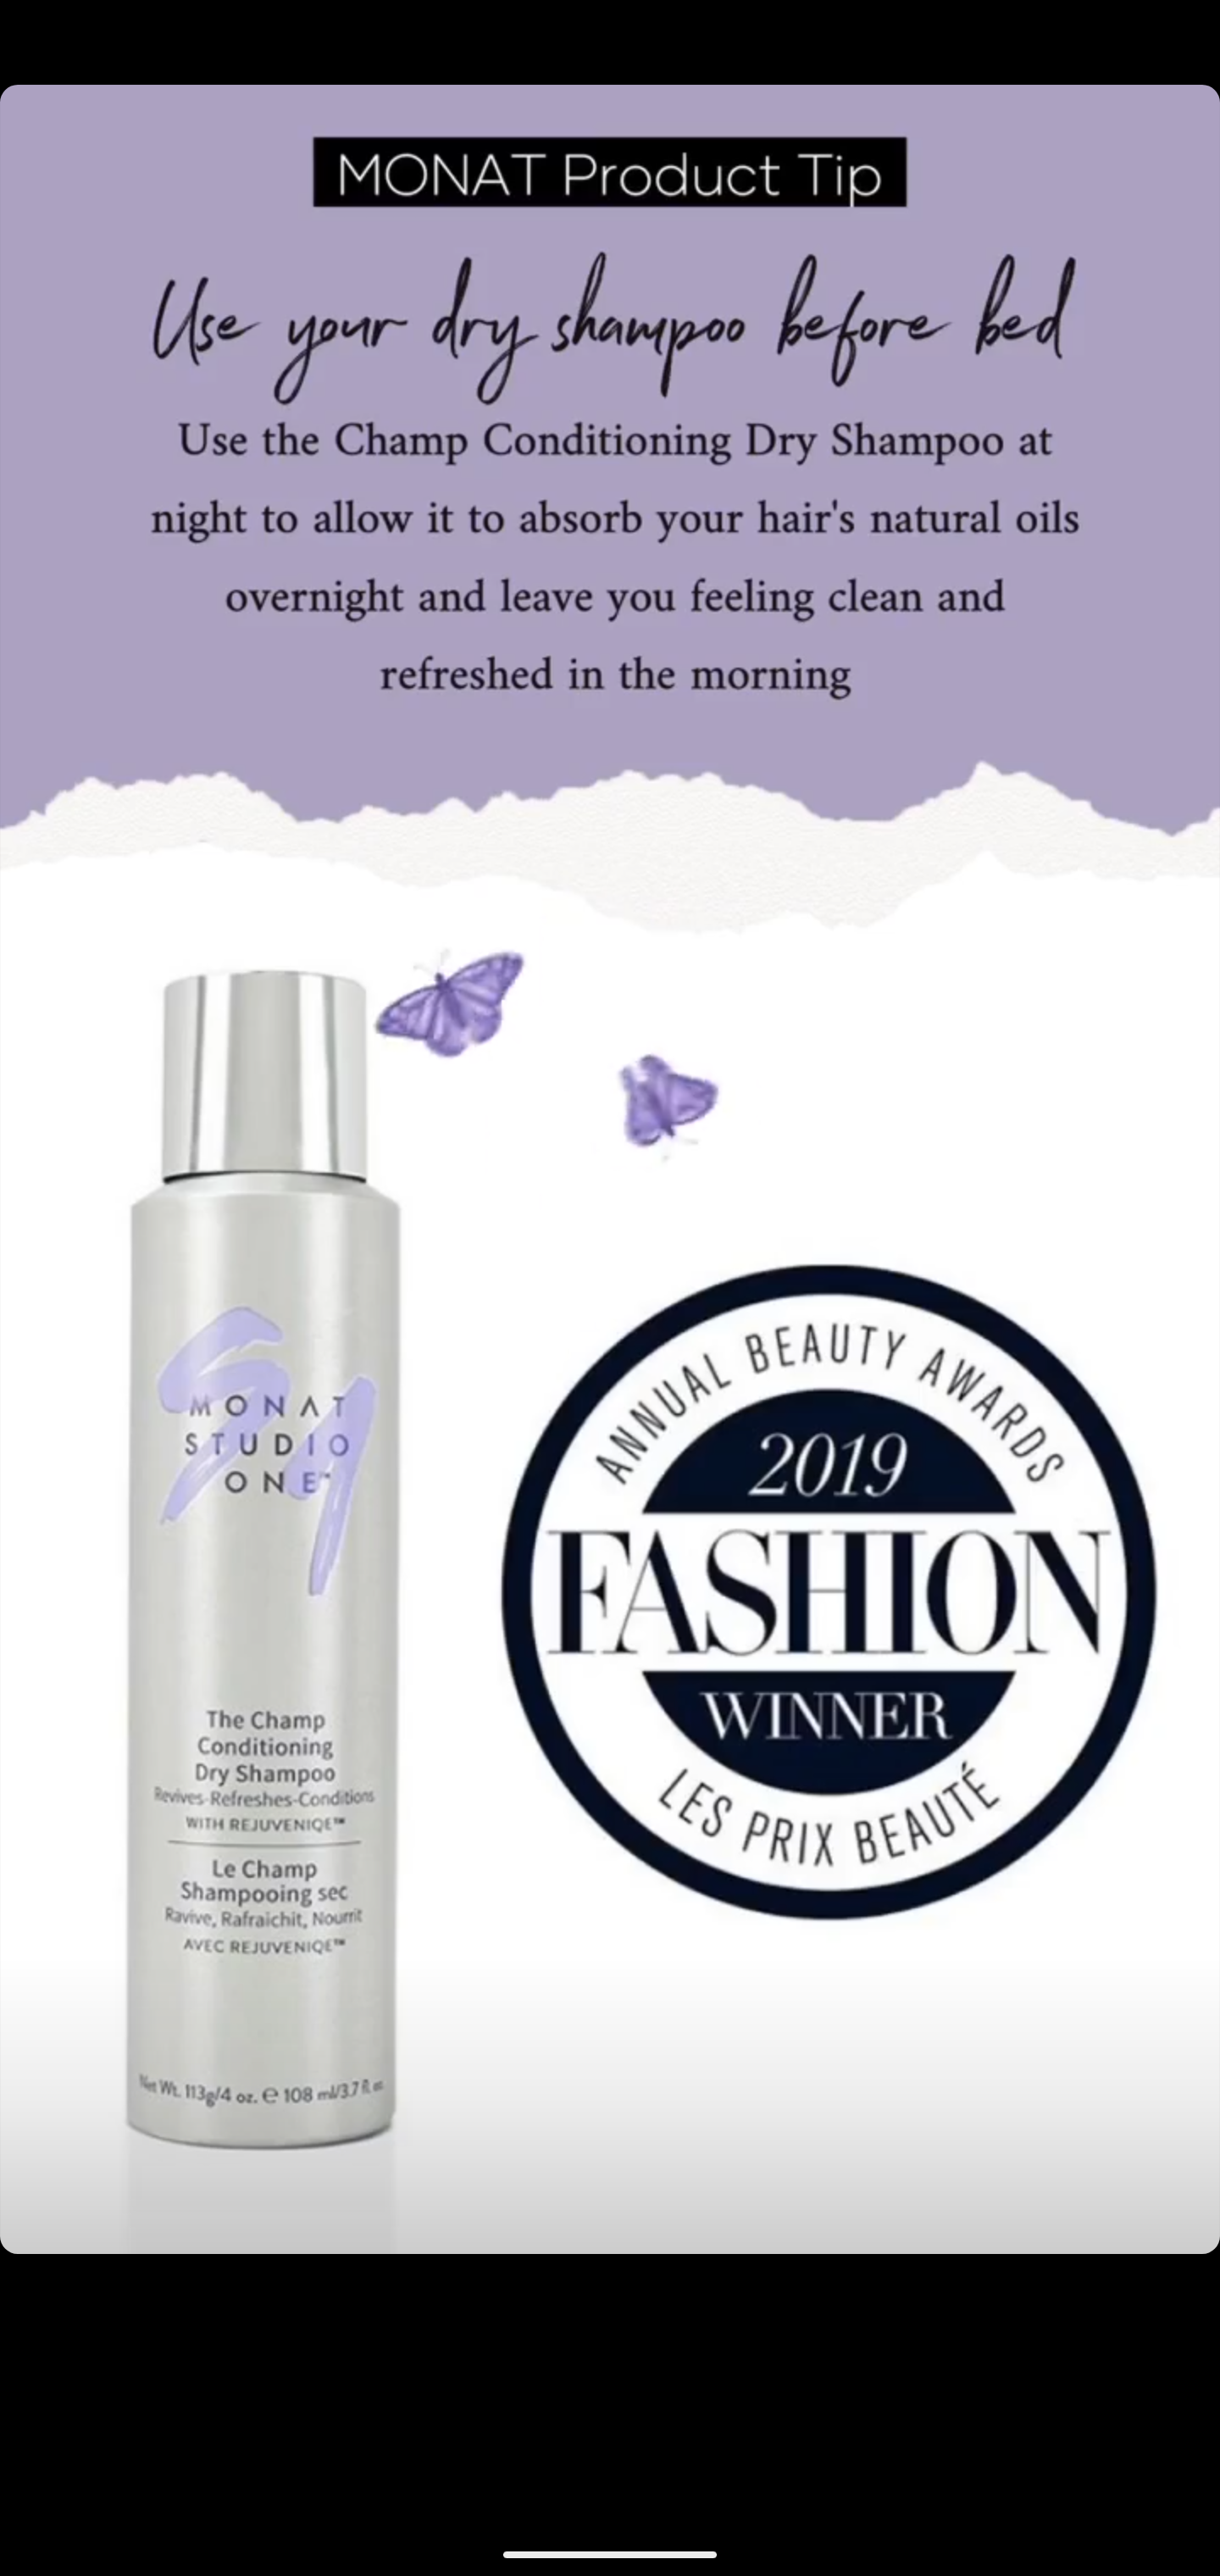 Monat Product Tip - The Champ Dry Shampoo